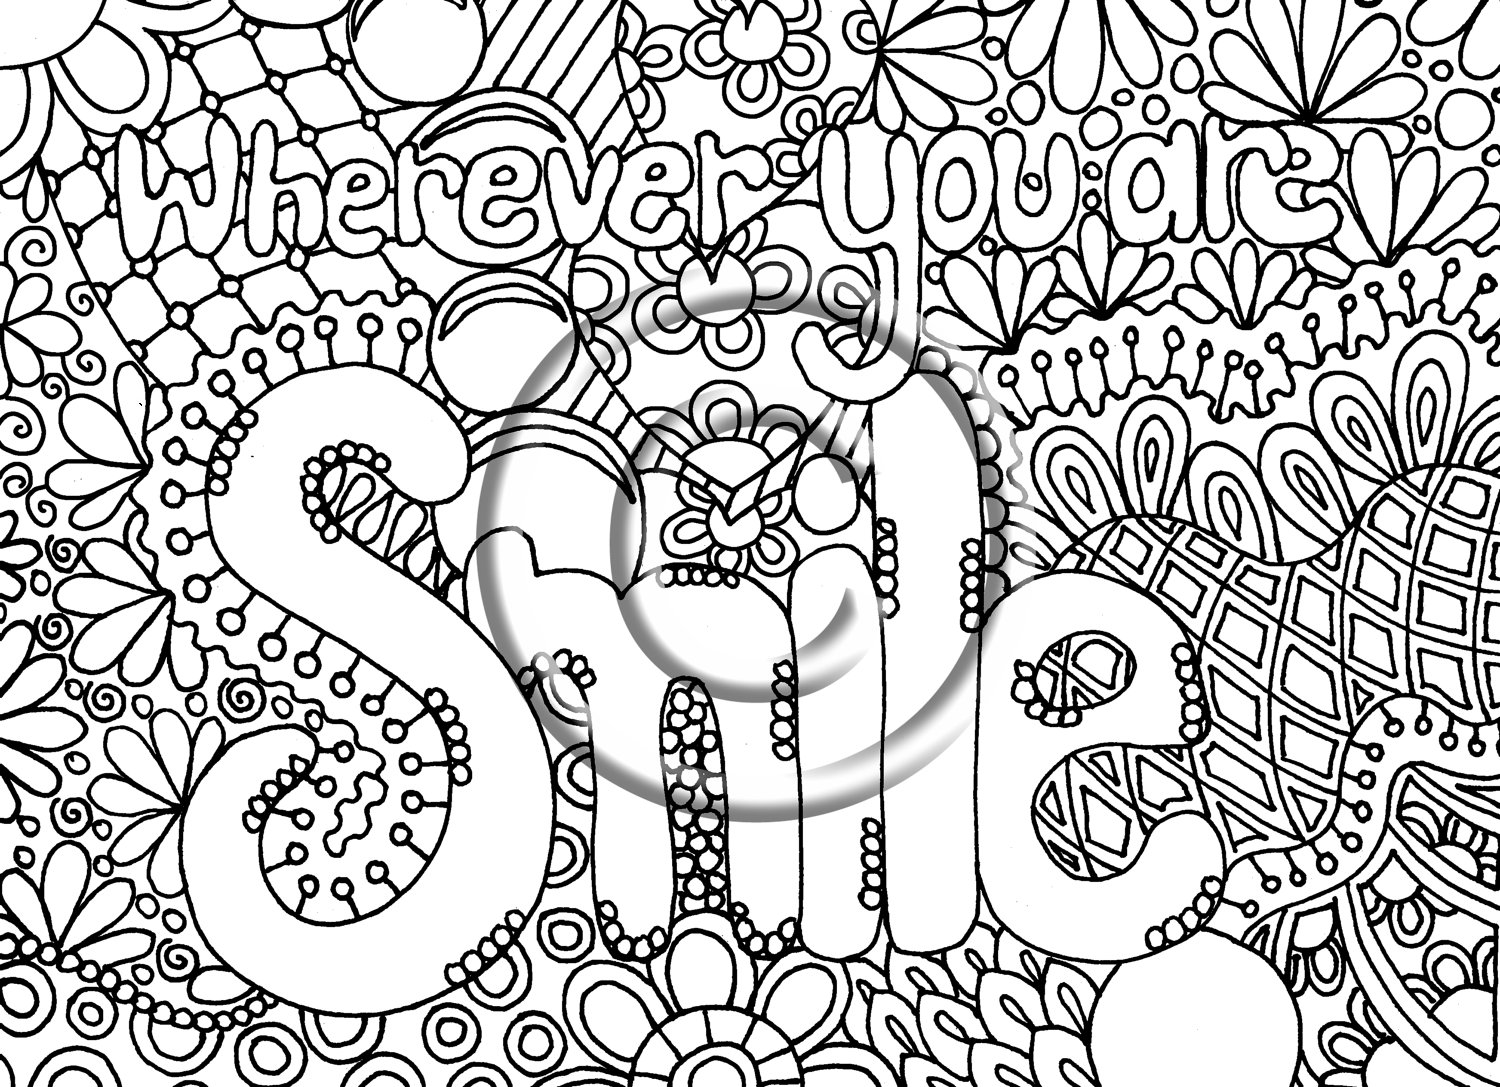 creative coloring pages for teens - photo#22